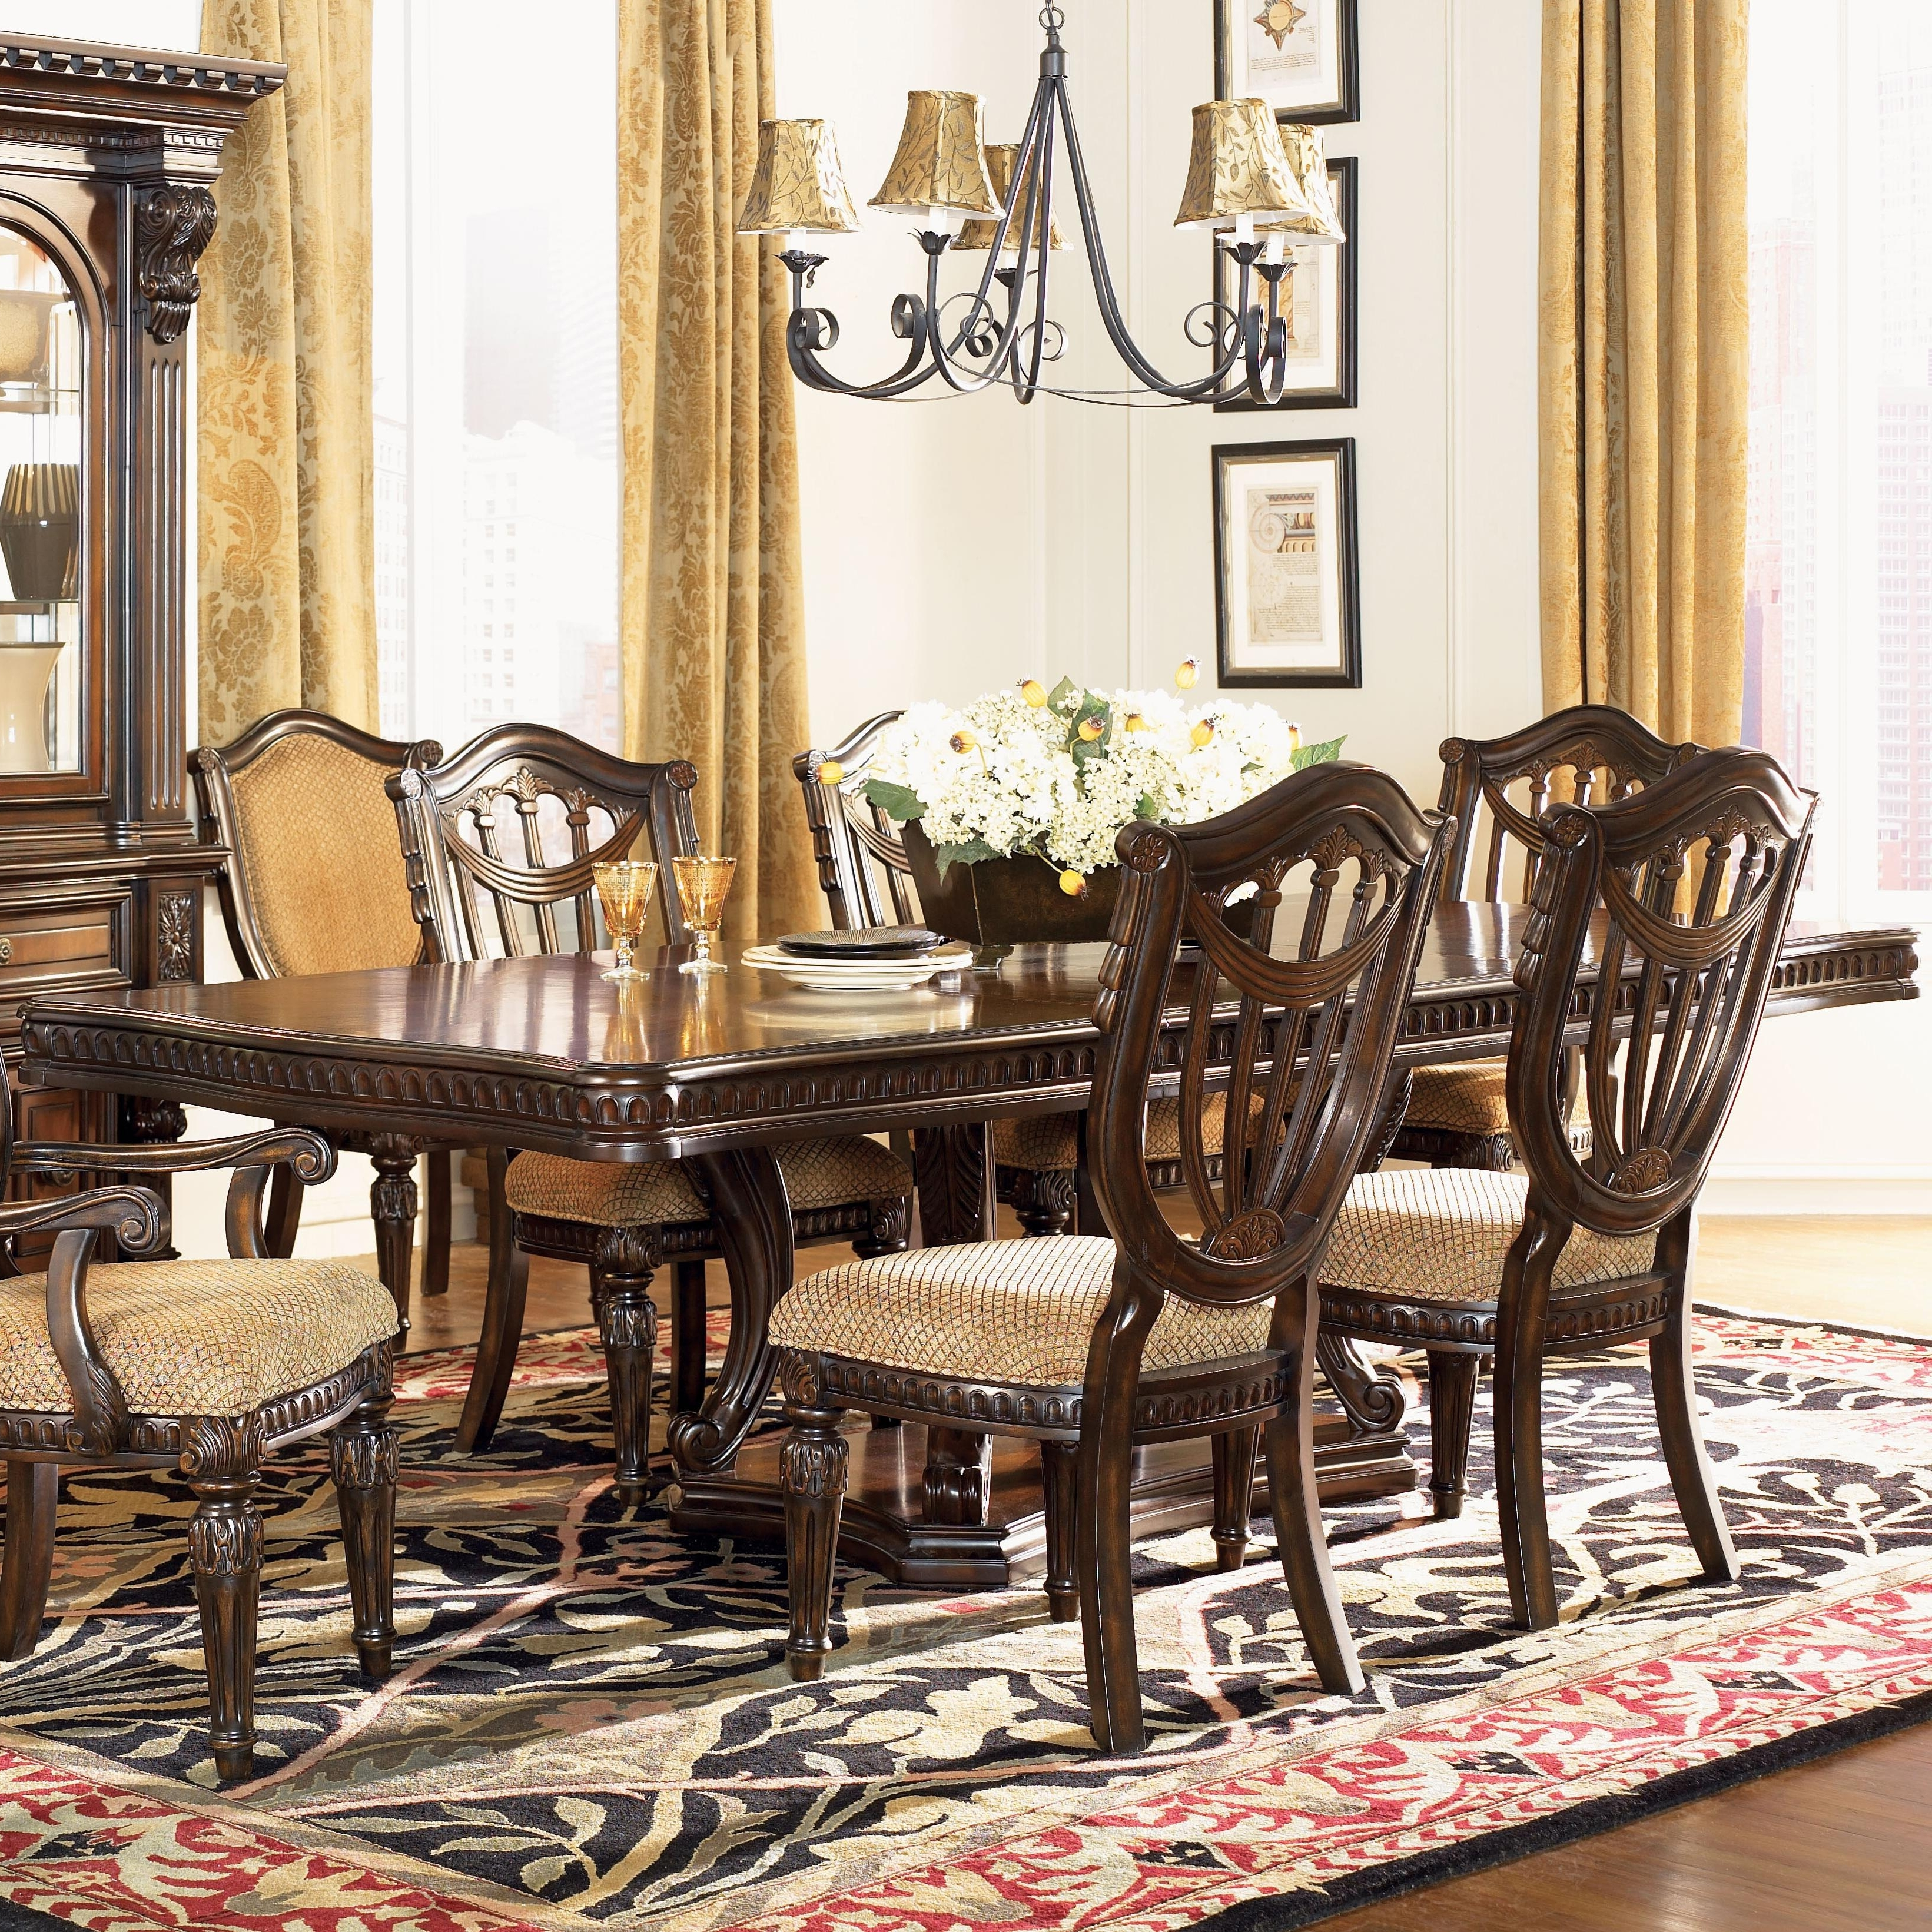 Fairmont Designs Grand Estates Double Pedestal Rectangular Dining Pertaining To Current Royal Dining Tables (View 3 of 25)